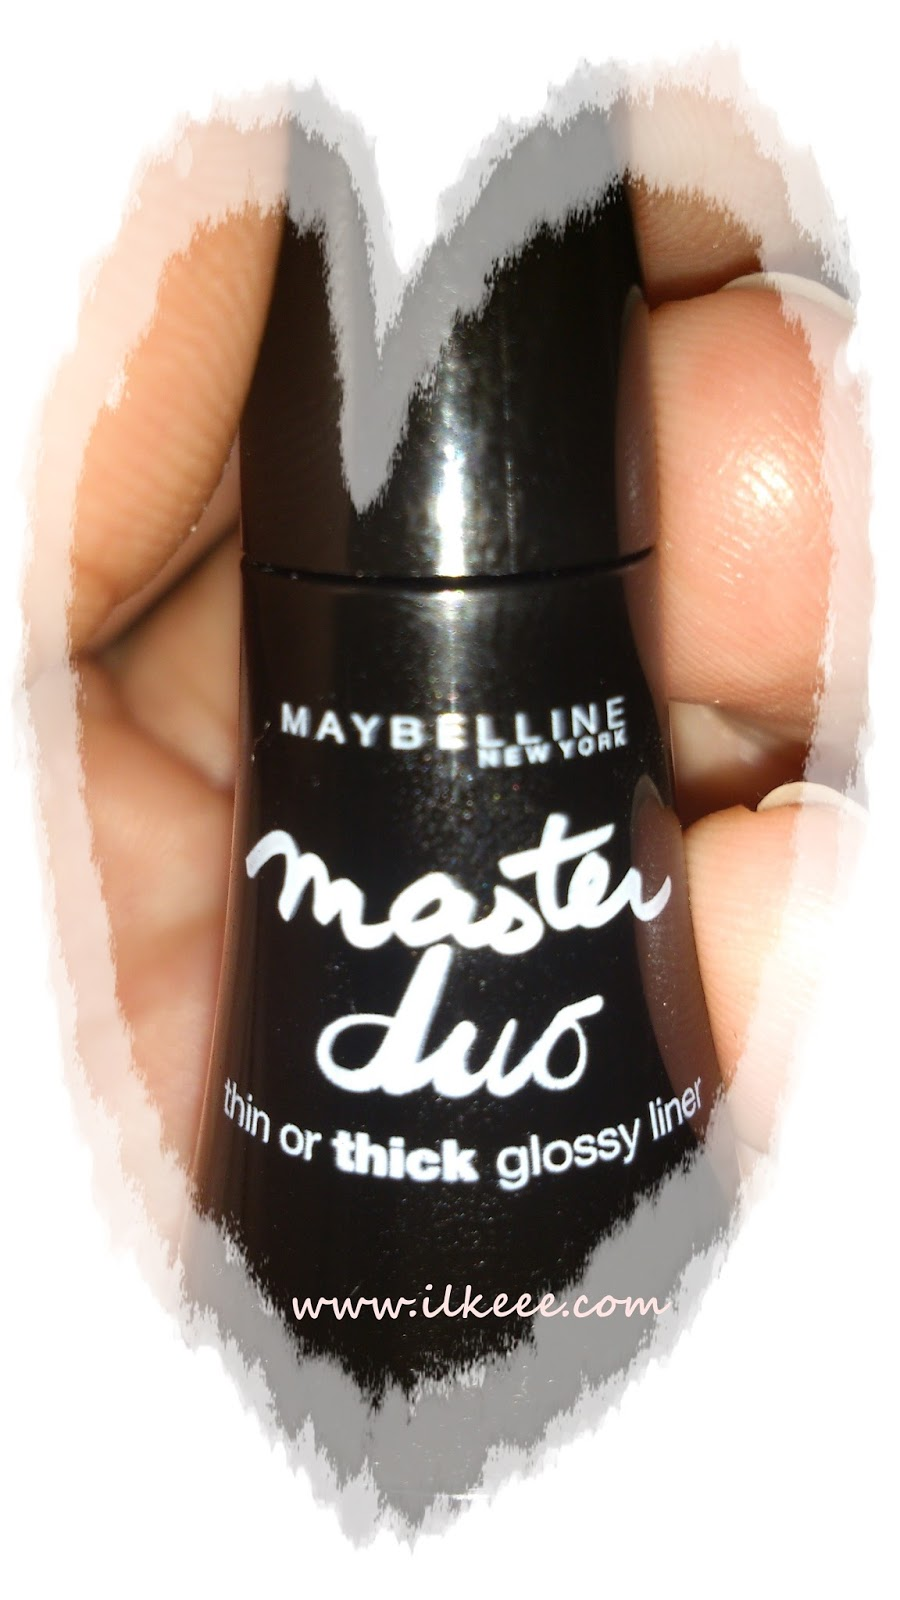 4 Blogger 1 Ürün: Maybelline Master Duo Thin Or Thick Eyeliner - Maybelline - Master Duo